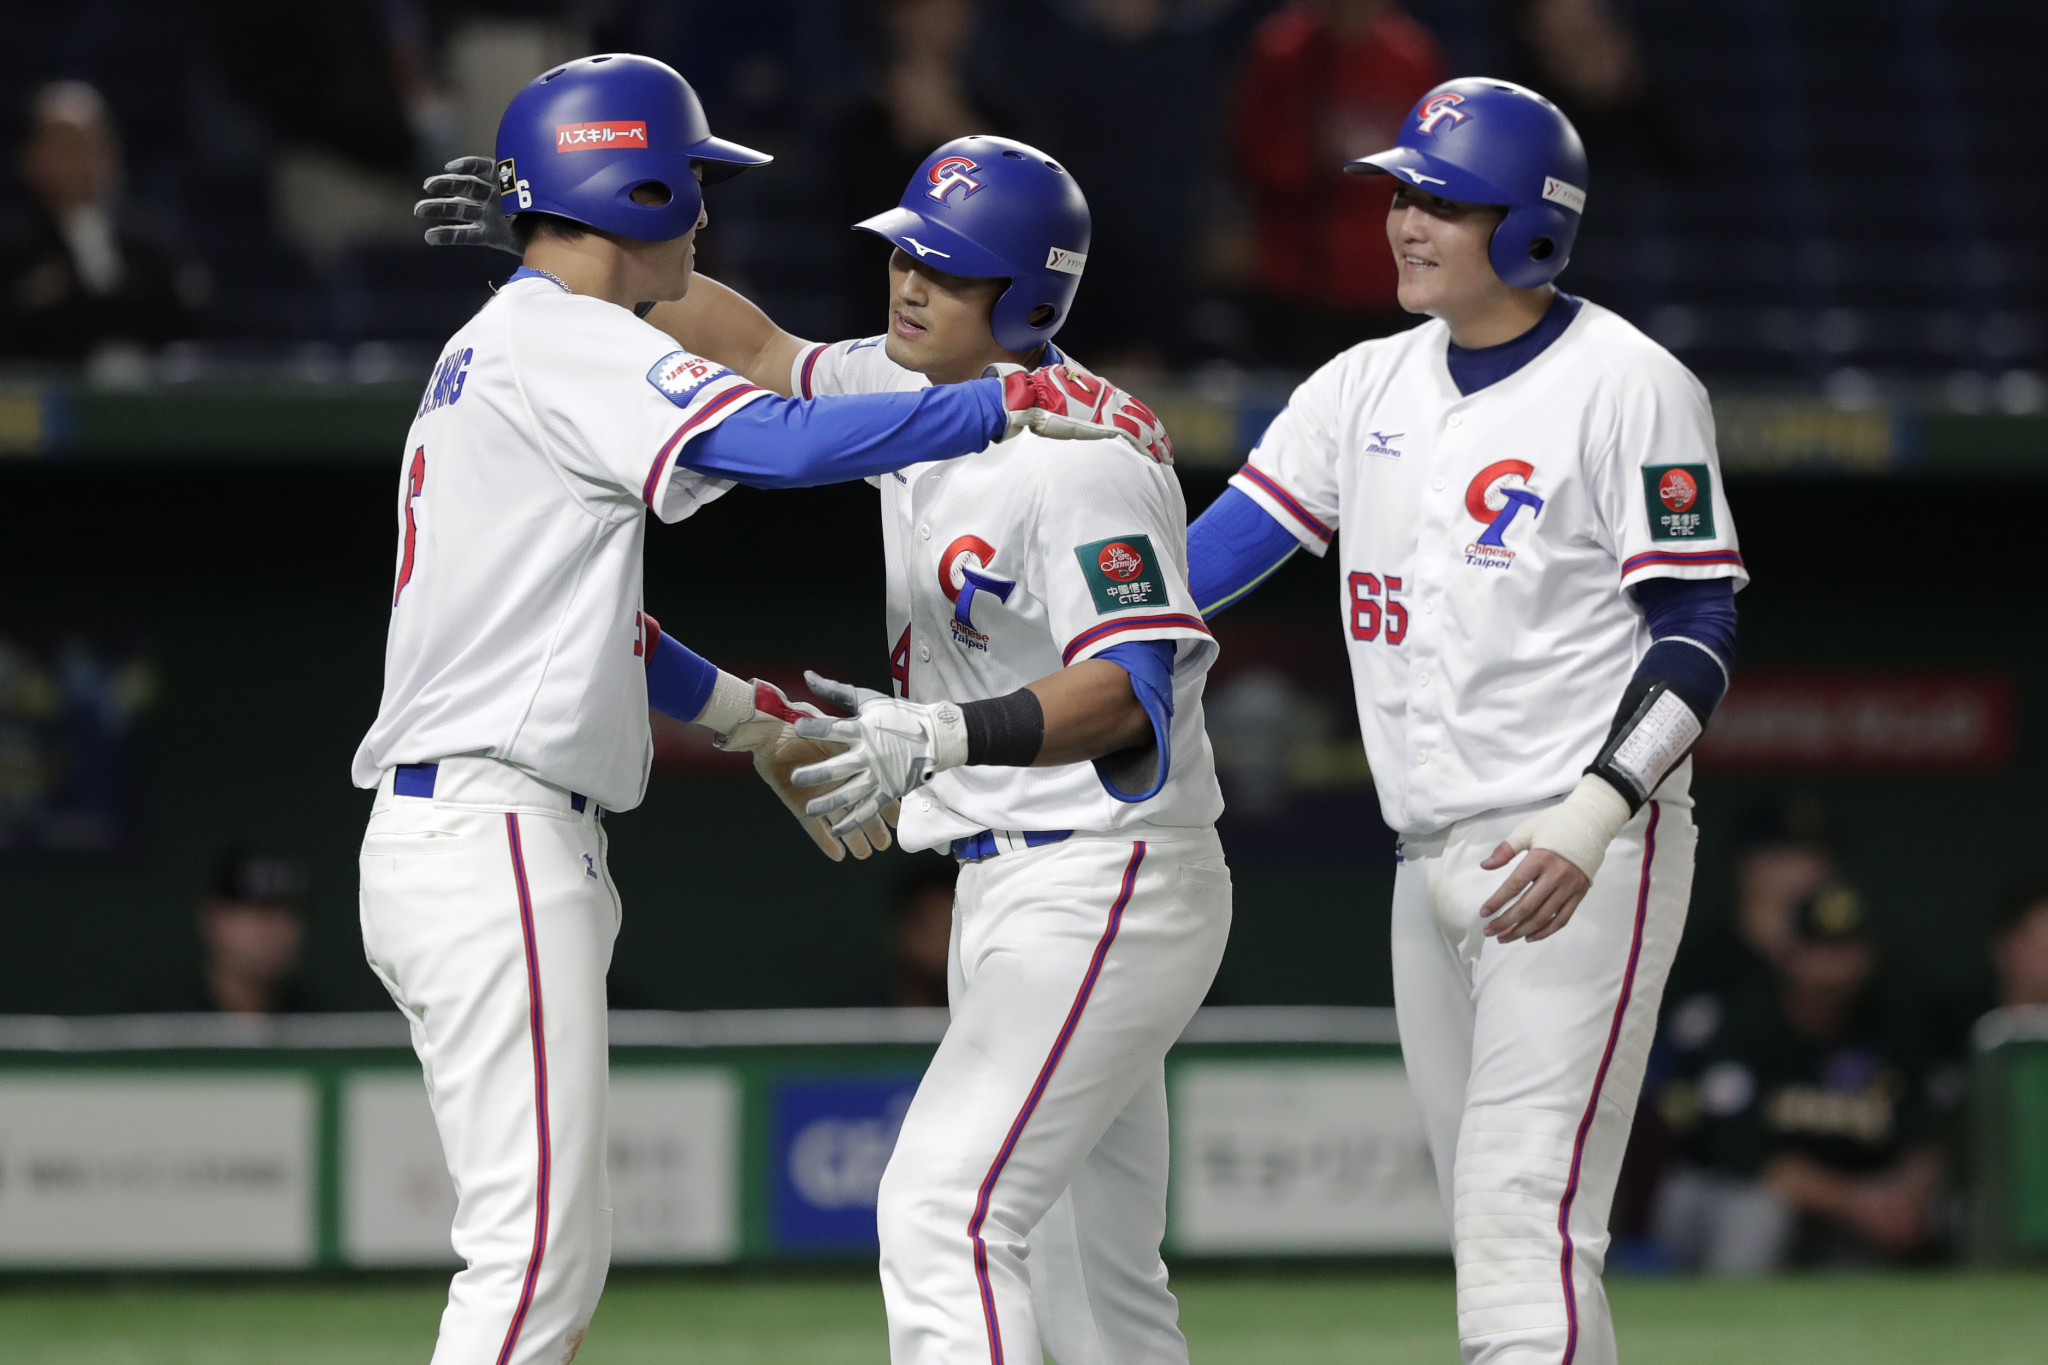 The Chinese Taipei men's and women's baseball teams sit fourth and third respectively in the world rankings ©Getty Images